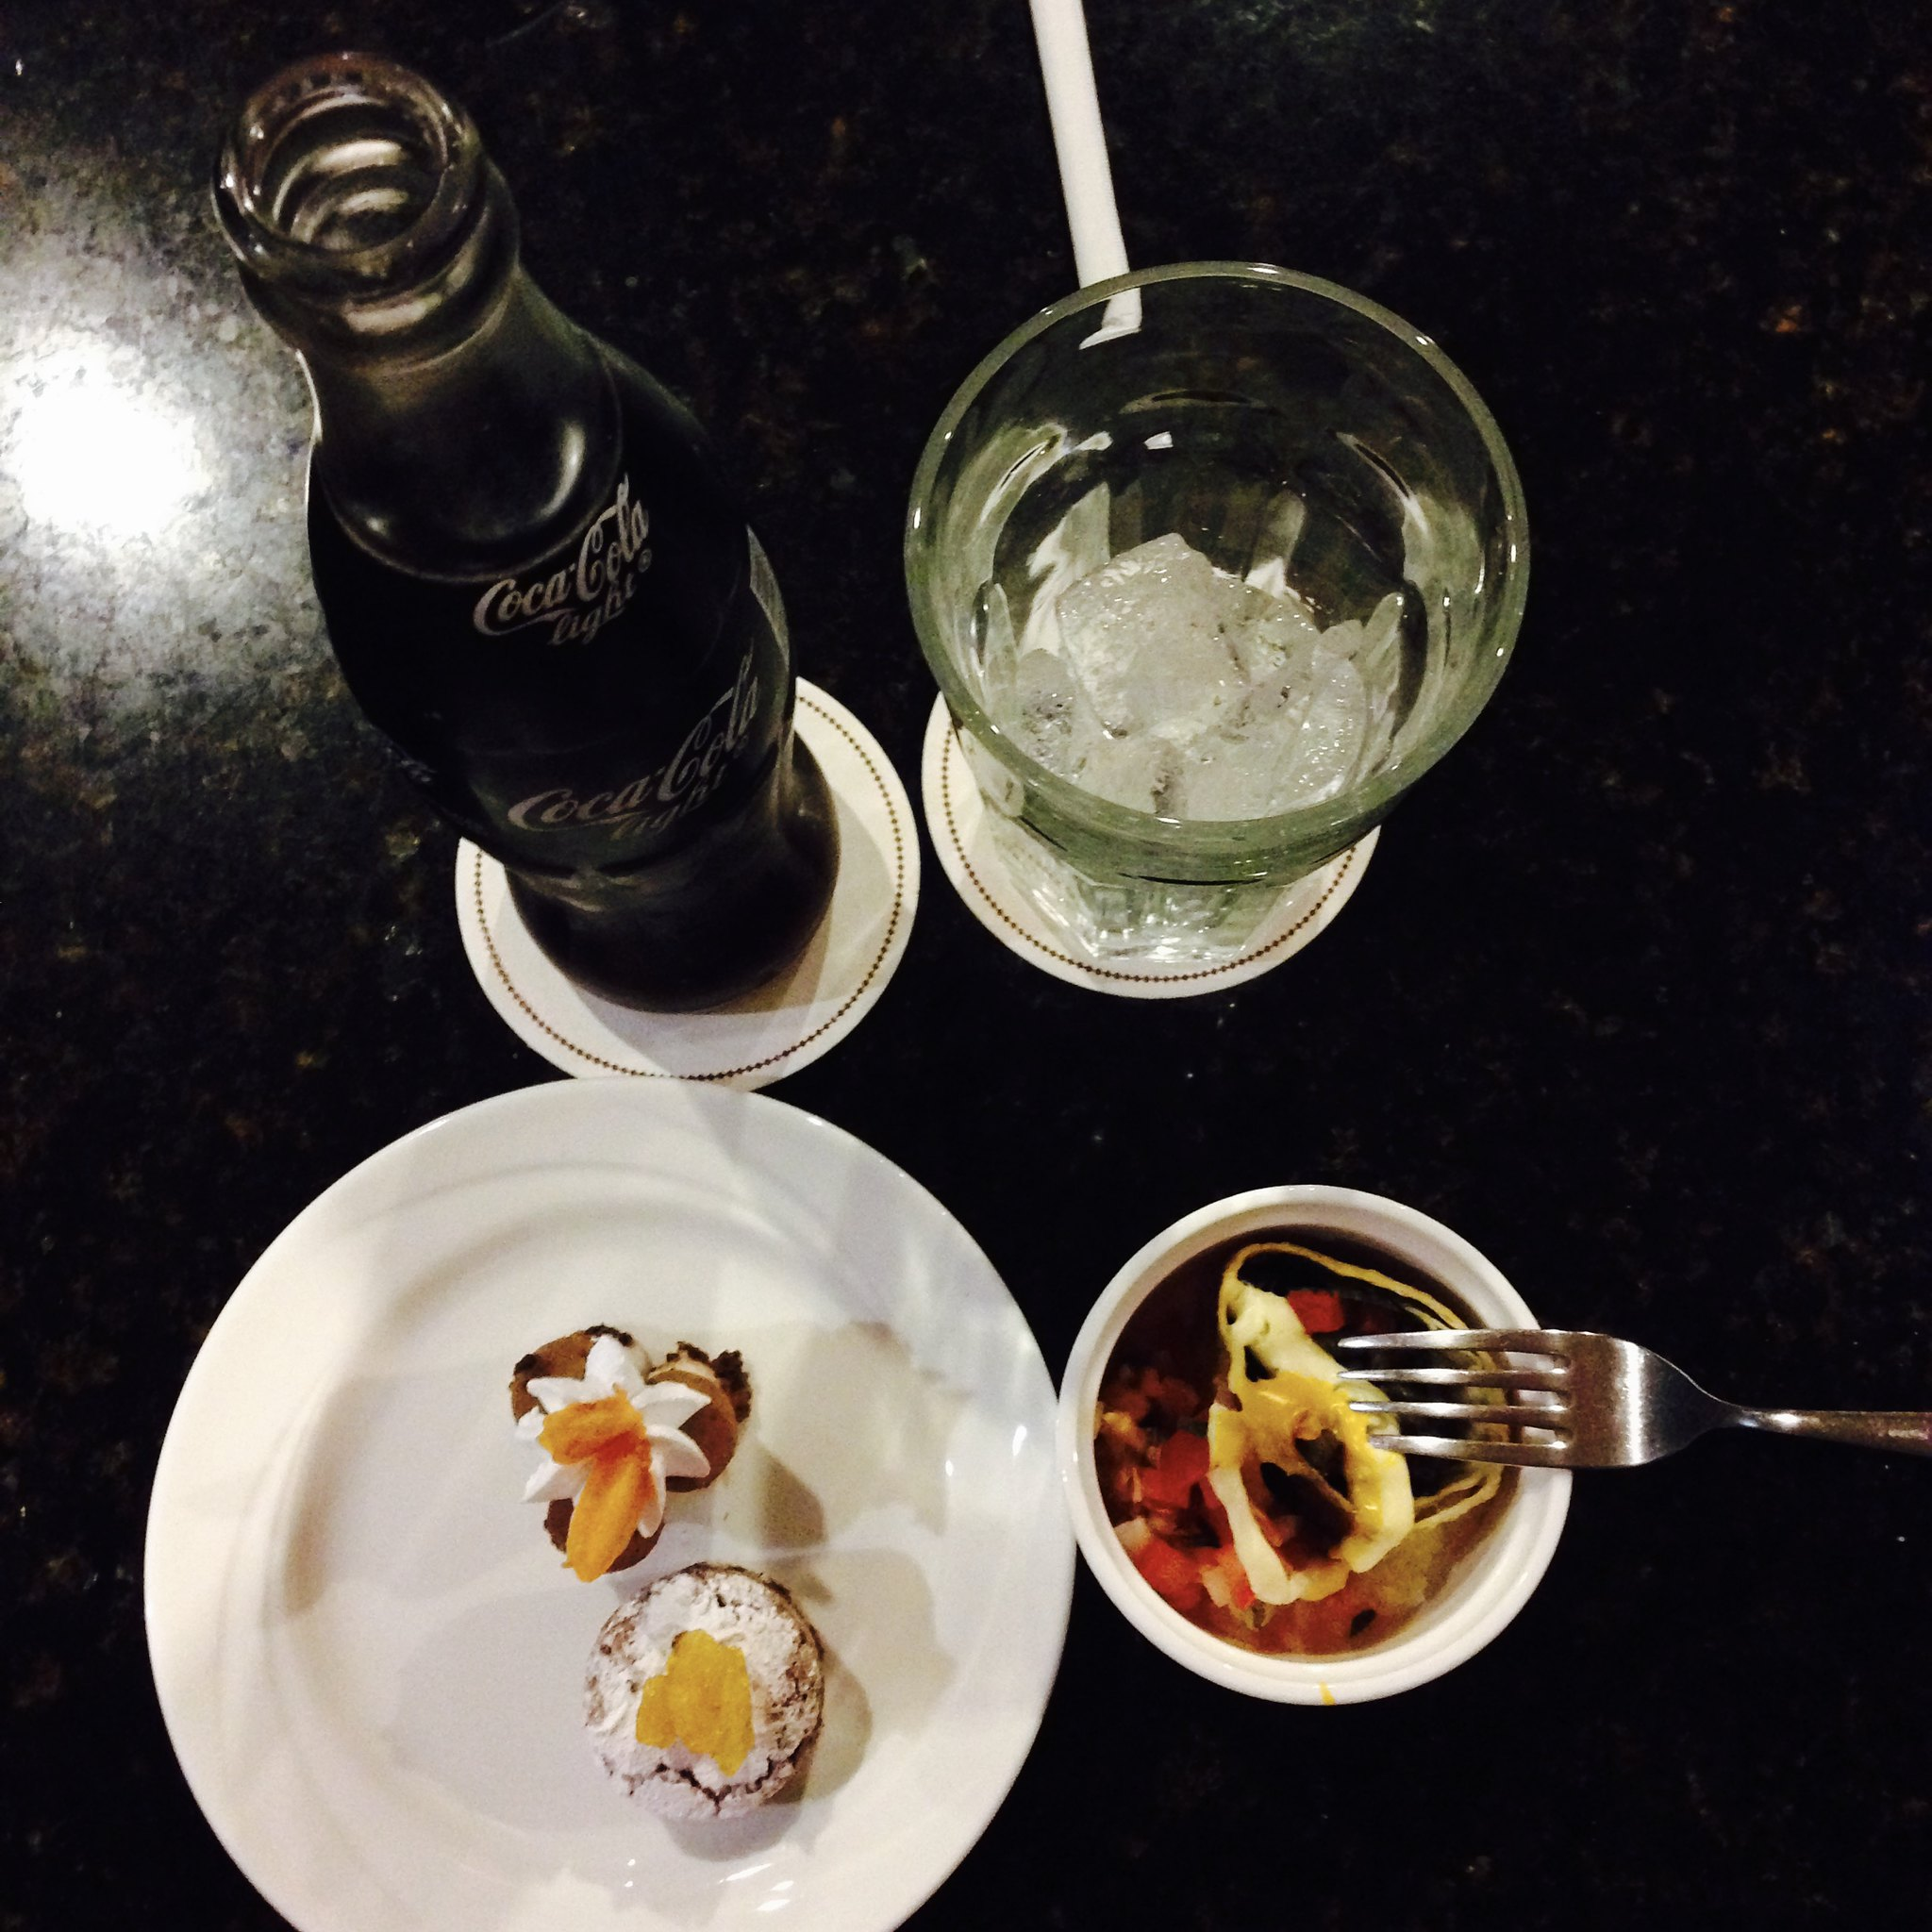 Evening Hors D'Oeuvres at DoubleTree Hilton Cariari